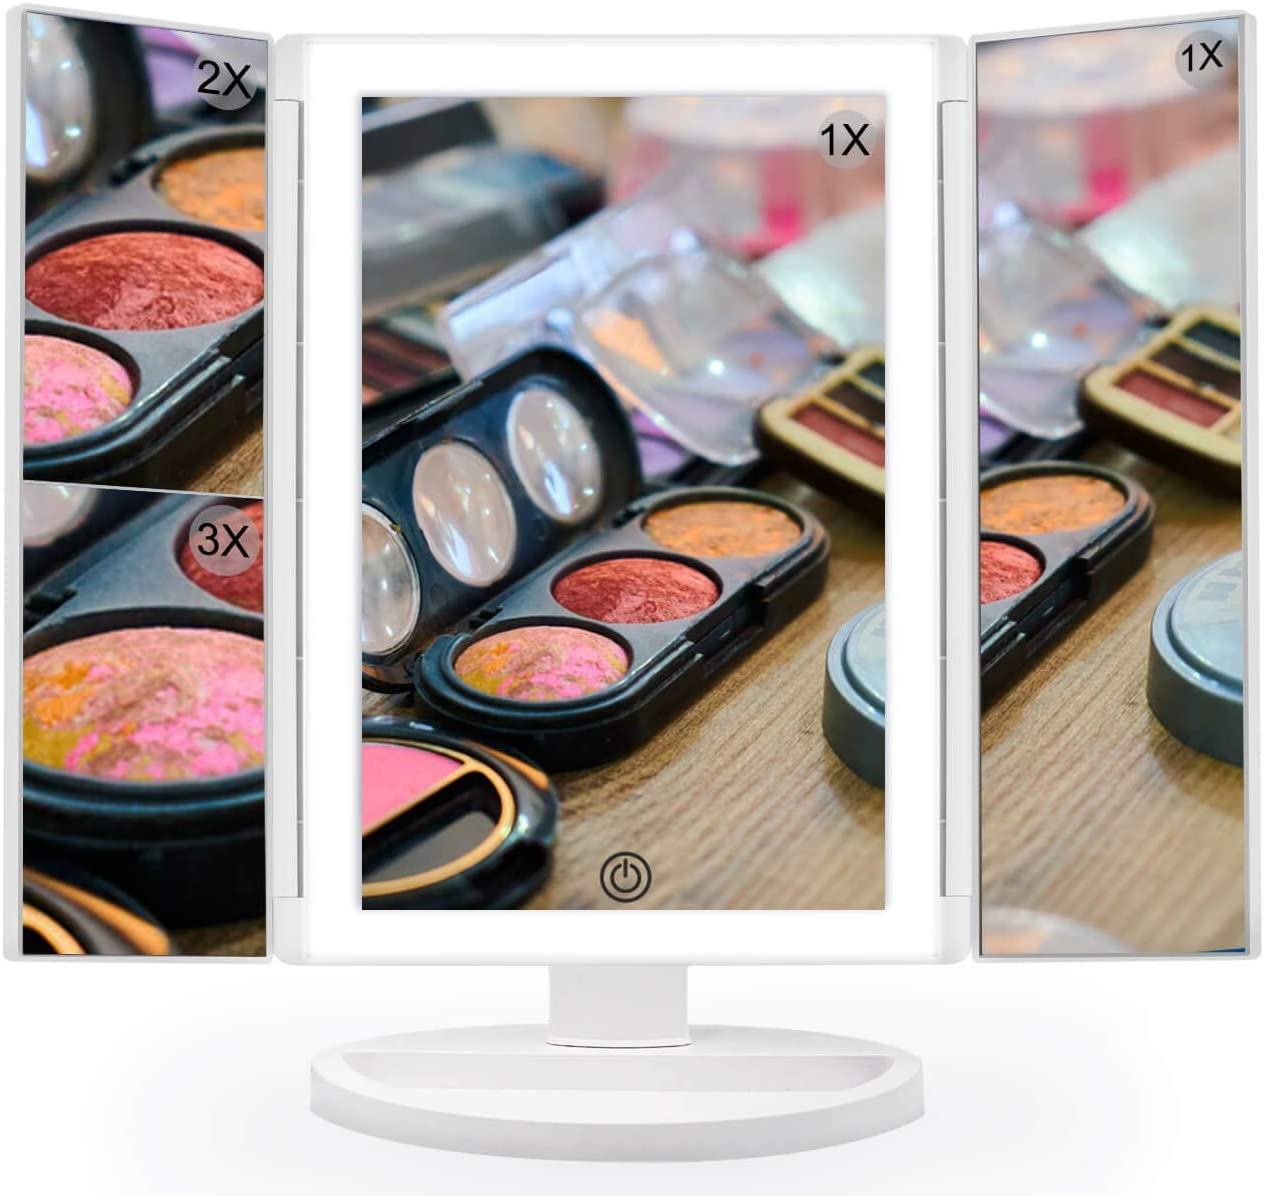 Insun Makeup Mirror Light 3 Color Lighting Modes Touch Screen Vanity Makeup Mirror Led 1X 5X Magnification,USB Rechargeable,360 Degree Rotation Magnet Adsorption Wall Mounted,White Gold